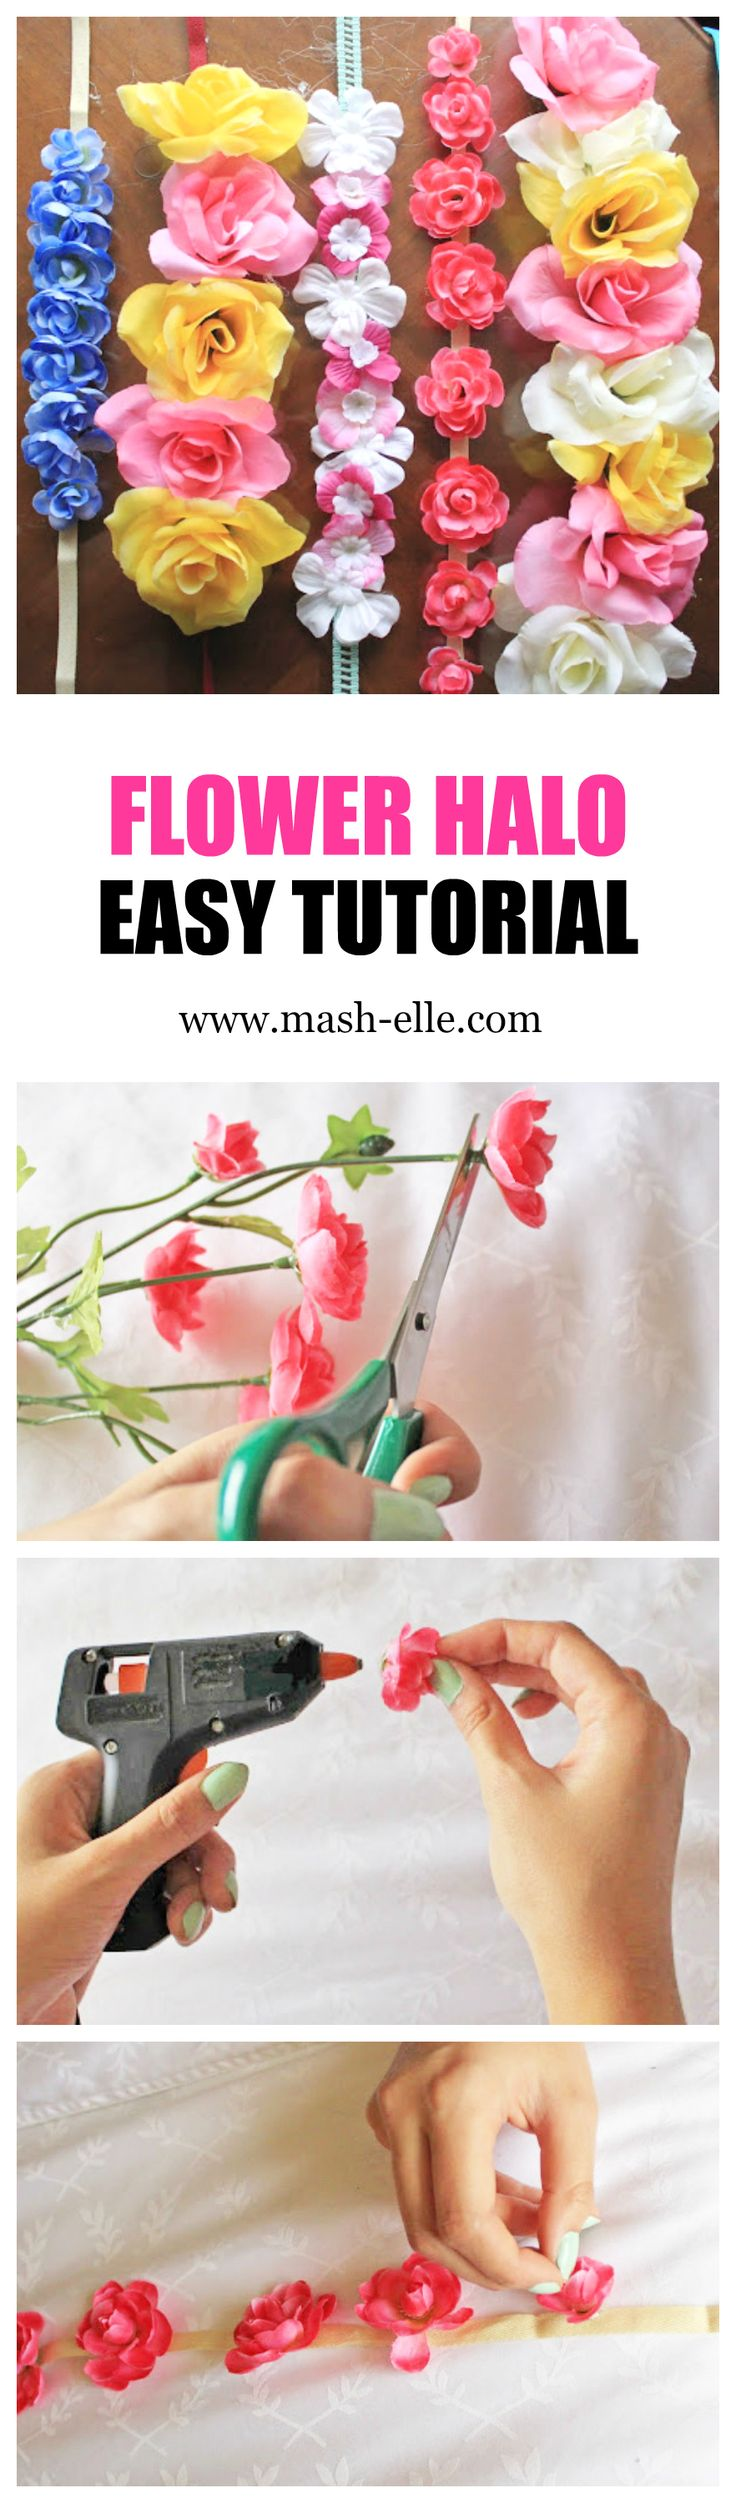 Super easy DIY flower crown tutorial! Fashion blogger Mash Elle demonstrates how to customize your very own flower halo for spring and summer music festivals such as Coachella and Bonaroo!